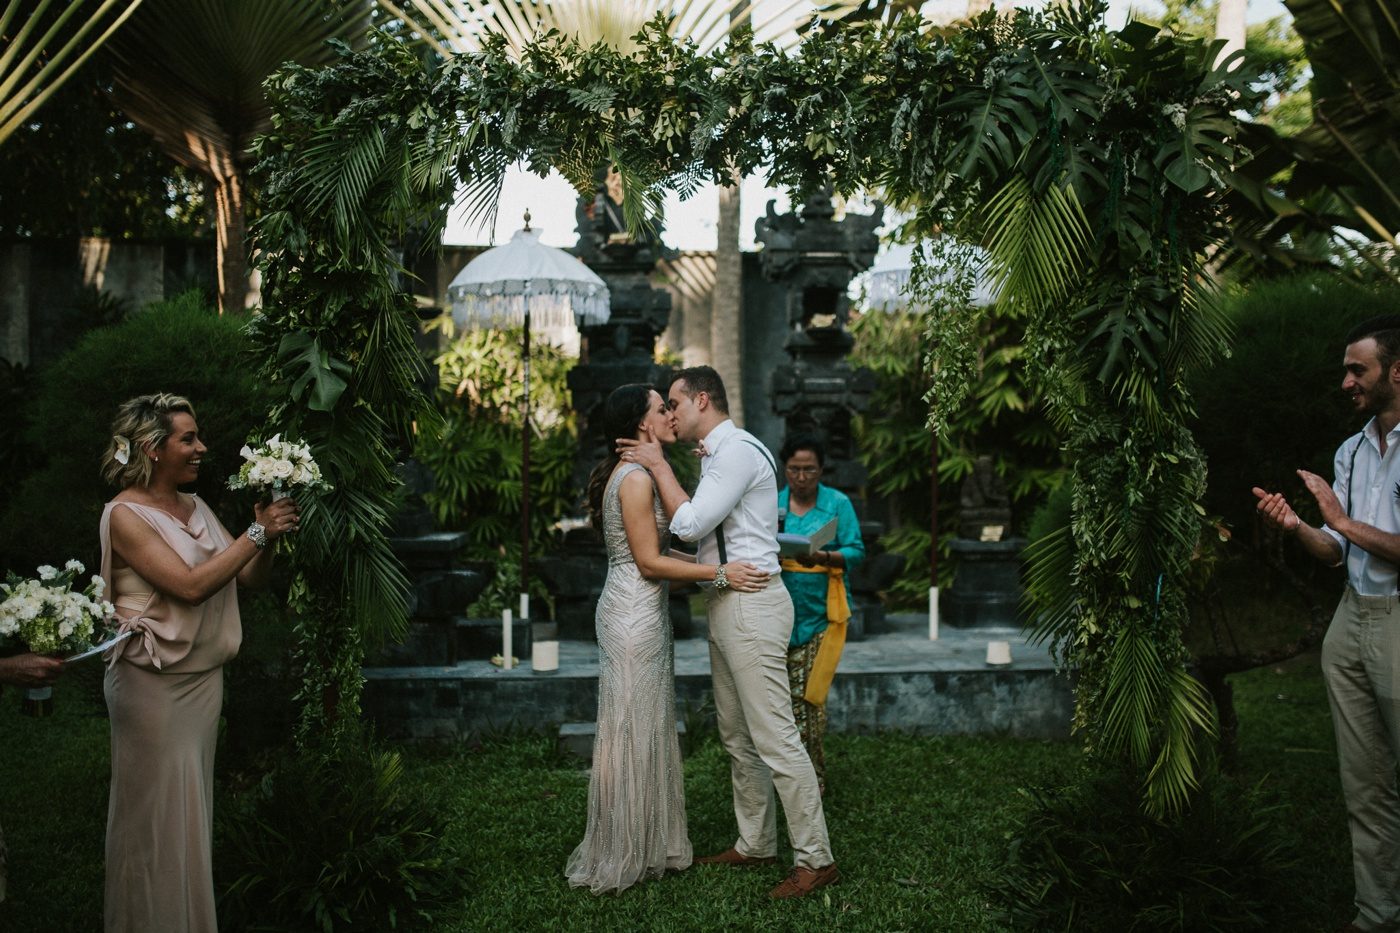 Deb-Ibs_Bali-Tropical-Relaxed-Wedding_Destination-Wedding-Photography_Melbourne-Wedding-Photographer_73